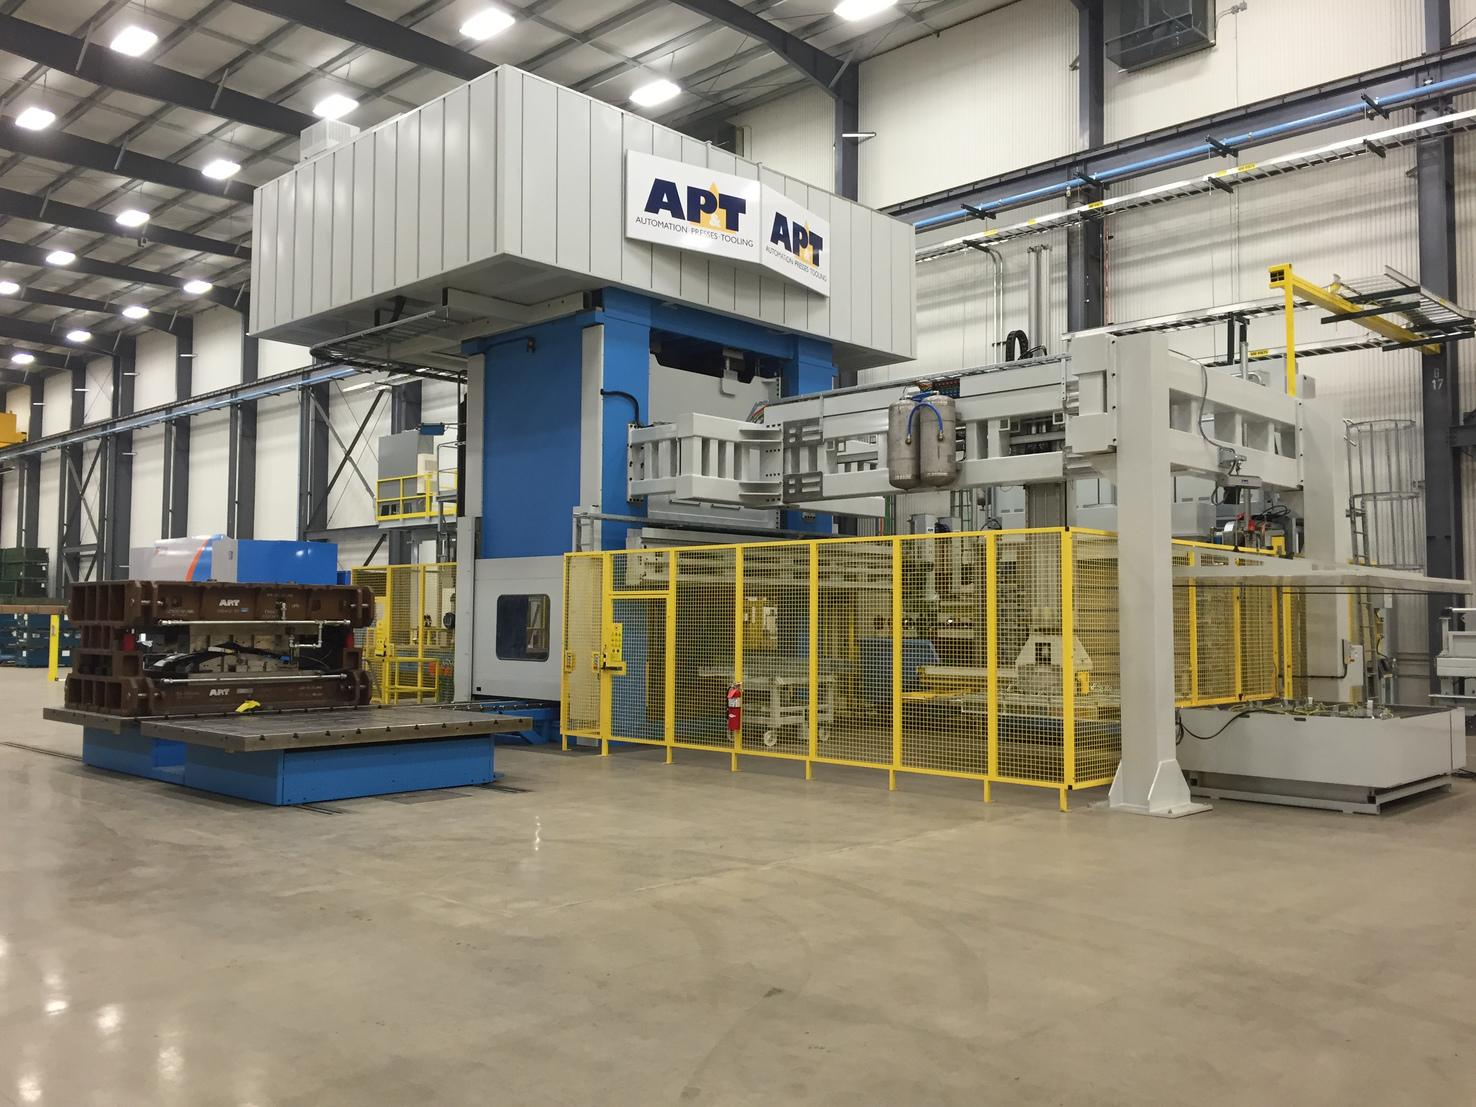 The new press hardening line at DTG's American Tooling Center will be used to develop and test tools and for pre-production, and it is an important part of the collaboration between the two companies.